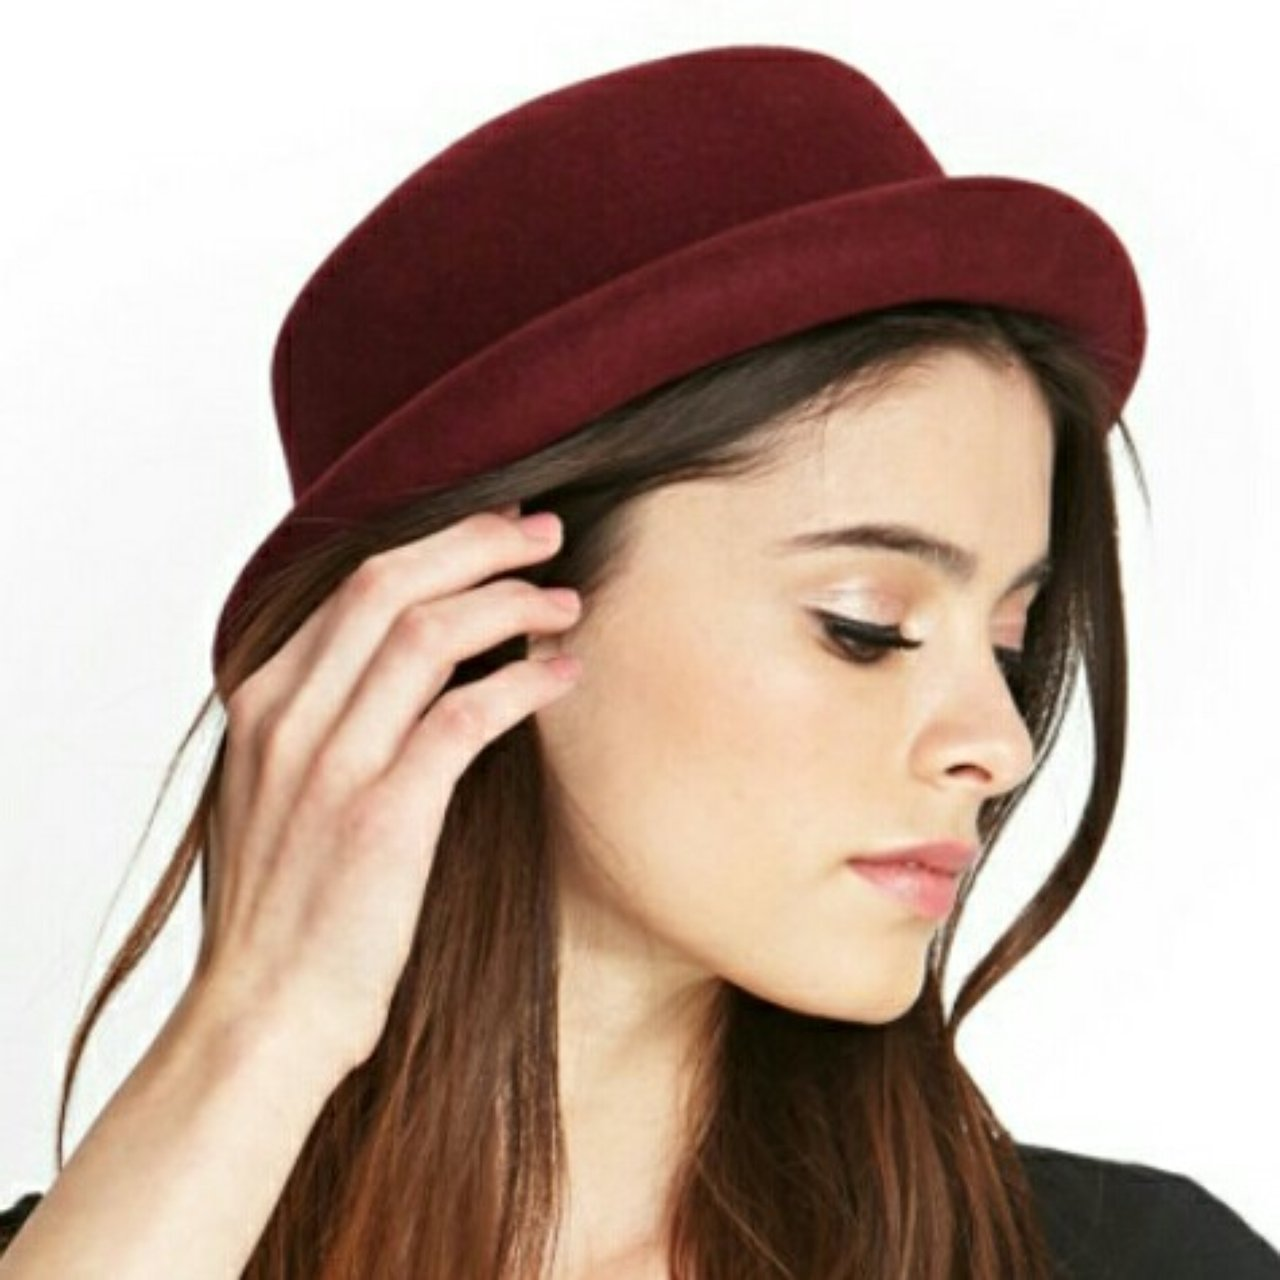 Burgundy bowler hat from forever 21. One size 1d0bdc01ddc